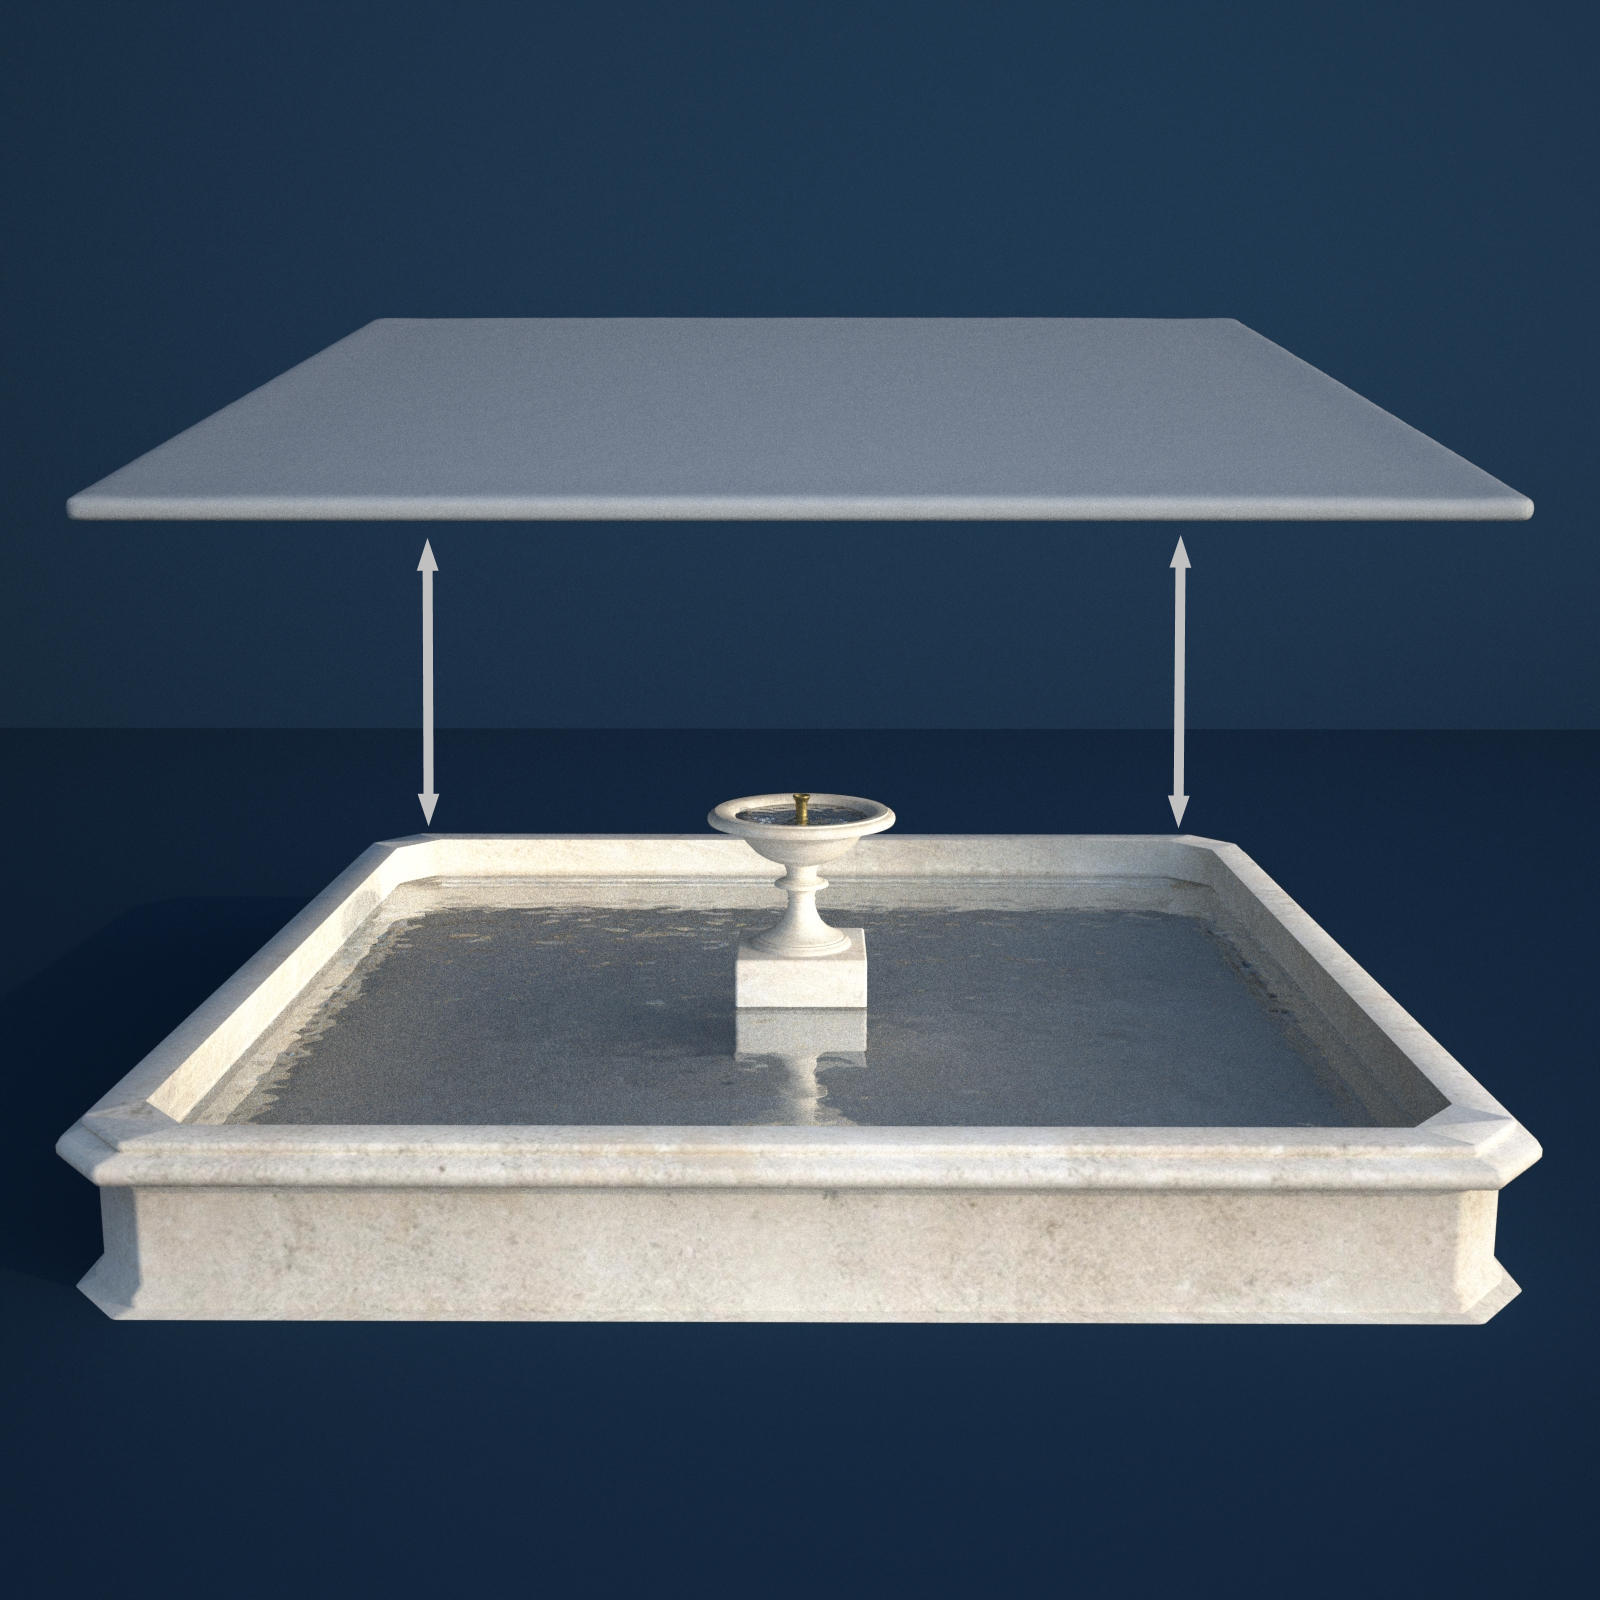 Fountain Maker Kit - Square Water Surfaces - Extended License